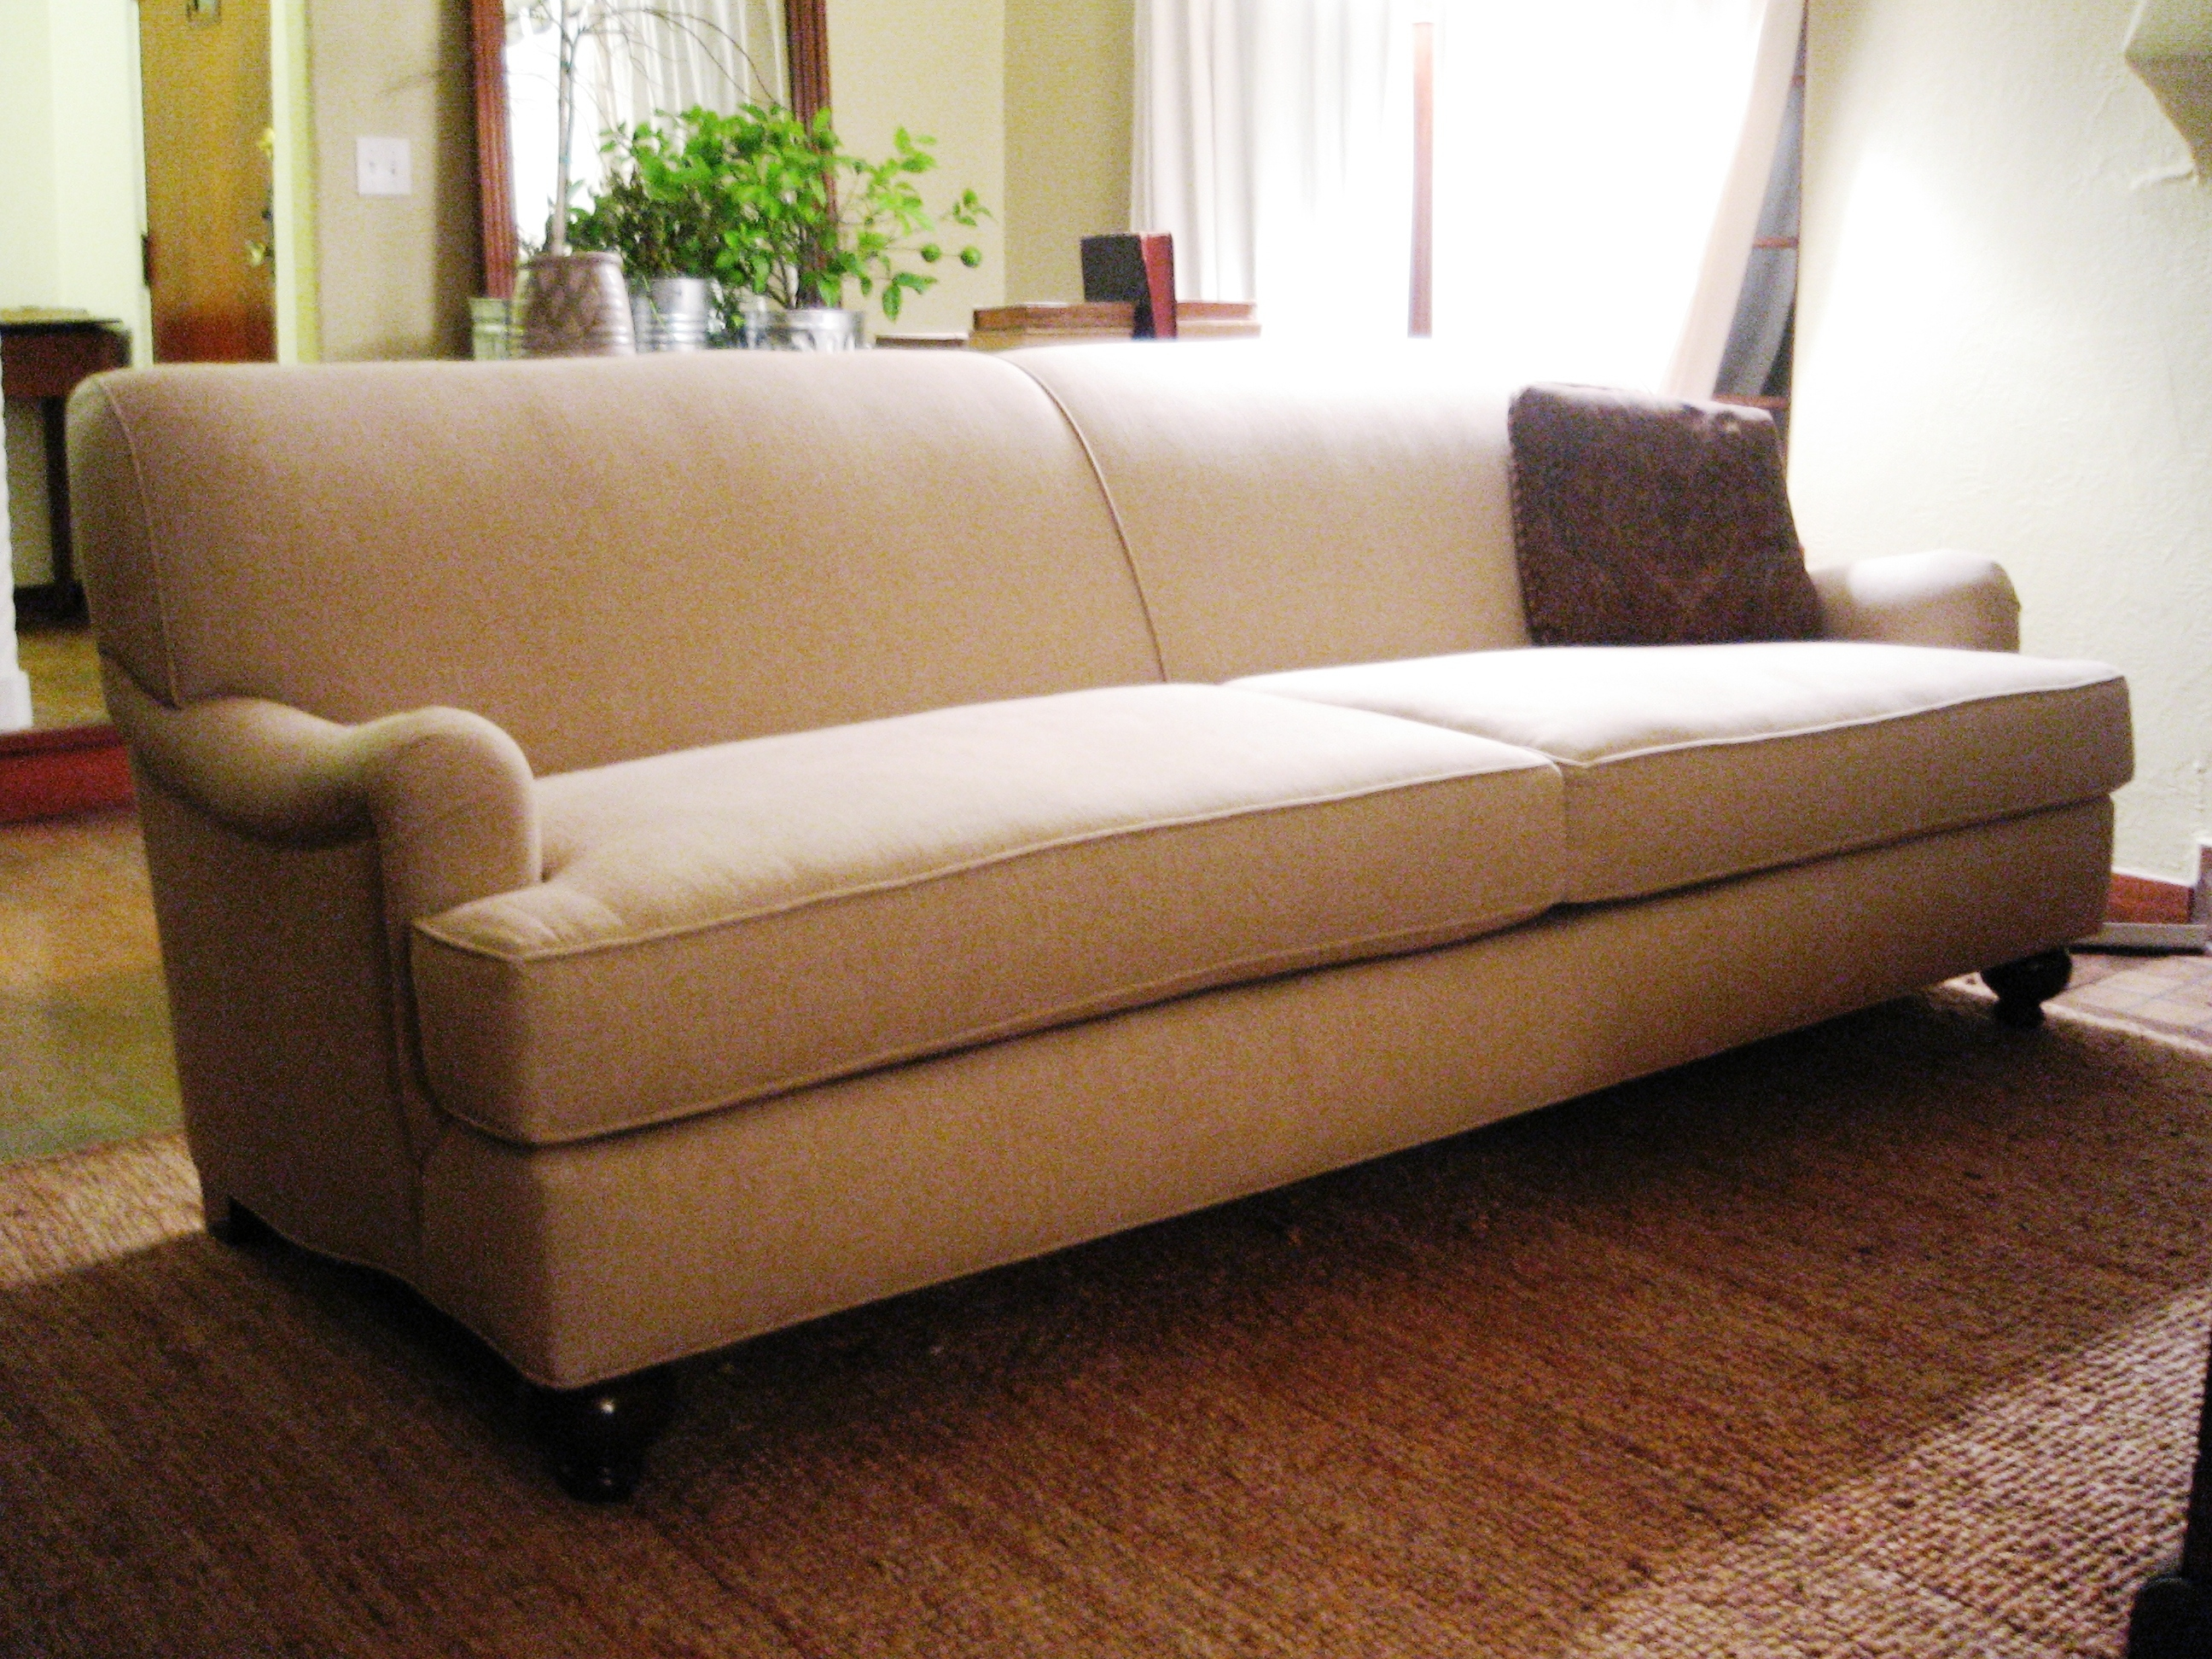 mid century style sofa canada living room wall ideas couch seattle | custom to the inch seating at non-custom ...